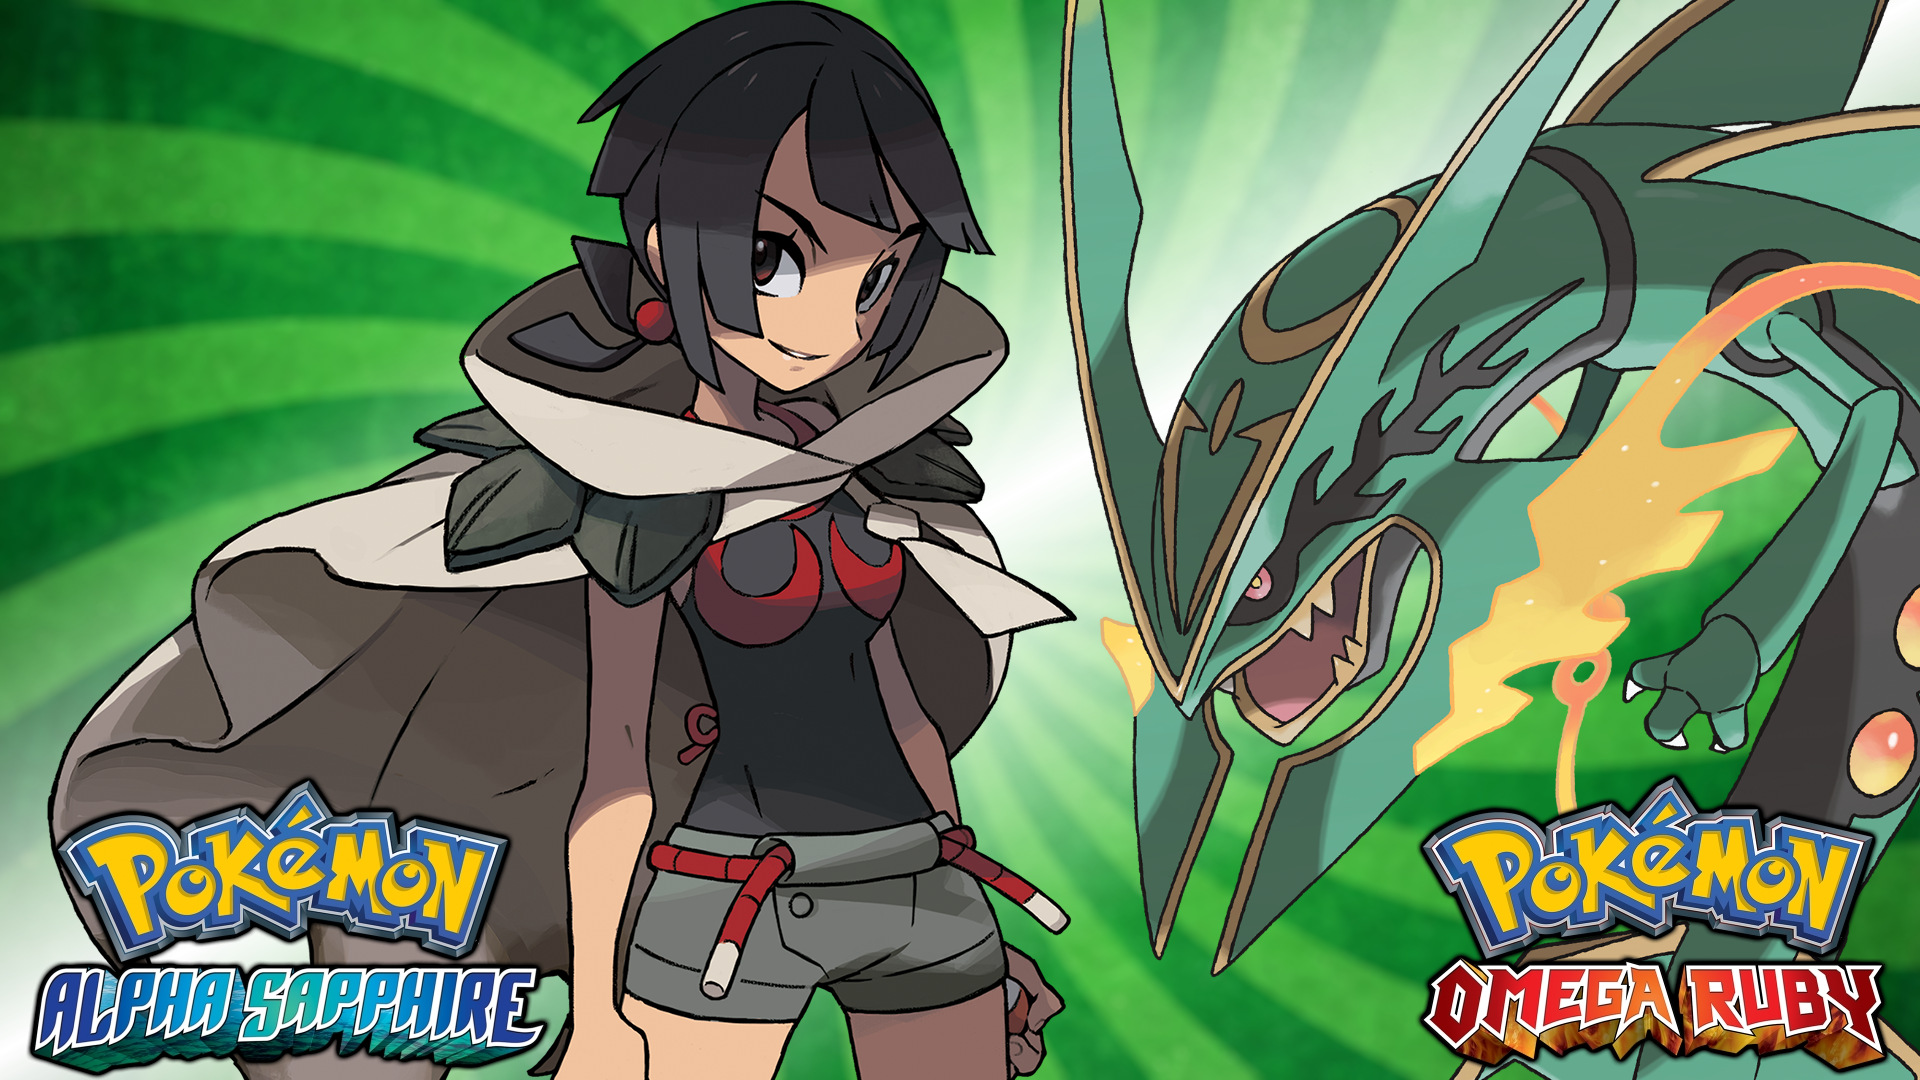 Omegaruby Alphasapphire Delta Episode Wallpaper By Blujumper On